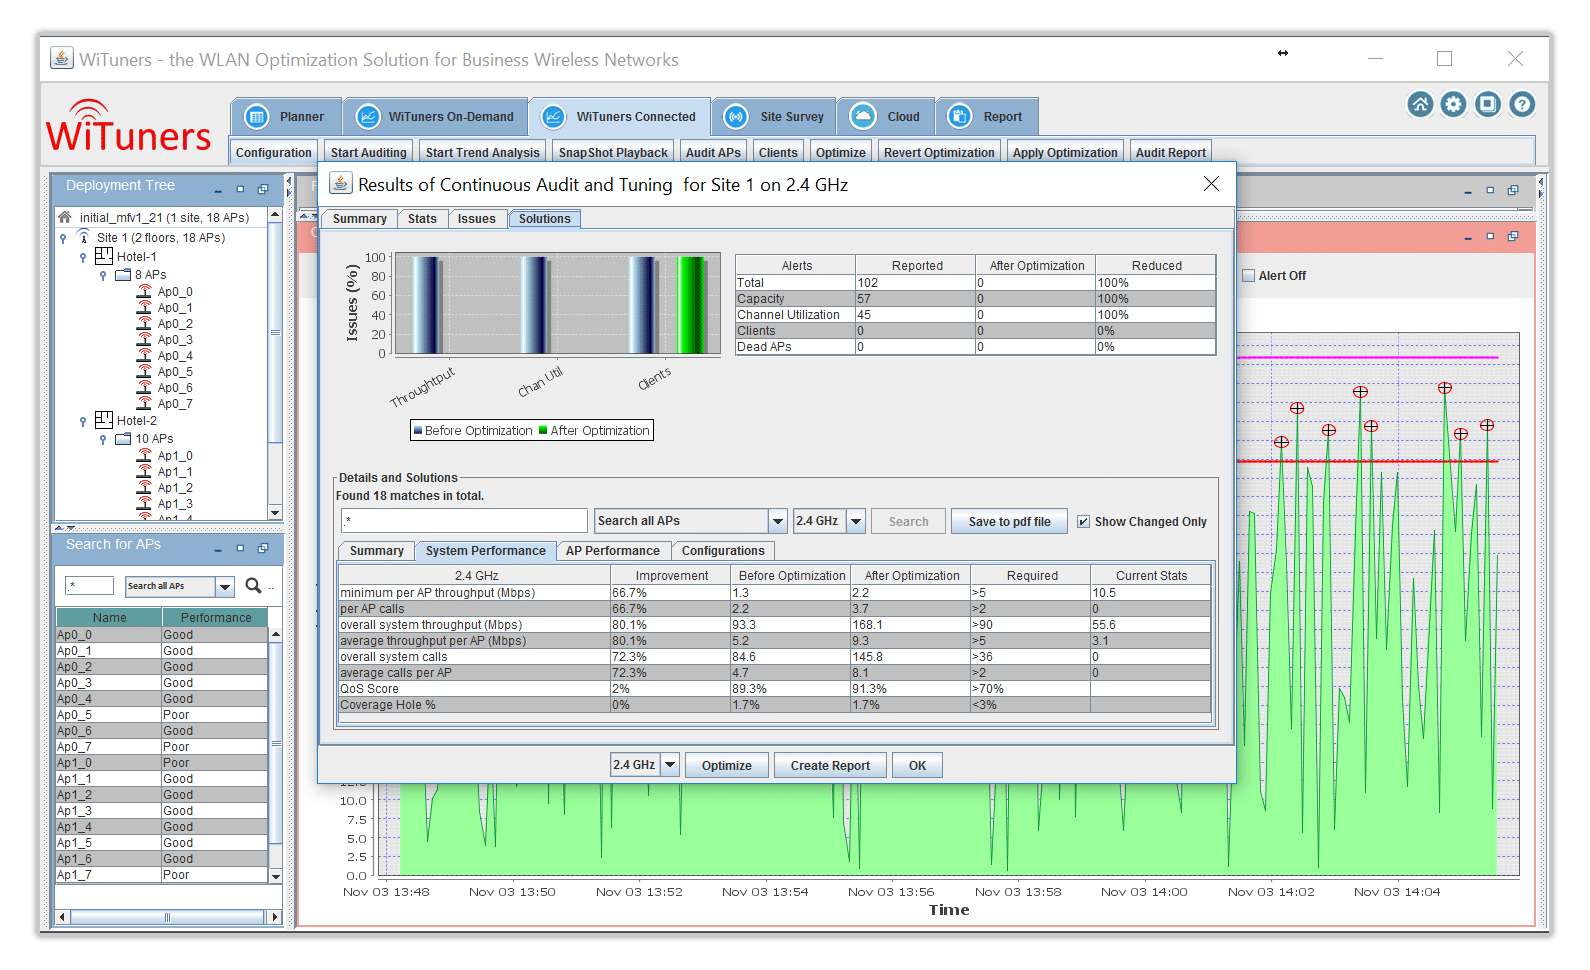 optimization solutions in WiFi Monitoring Software